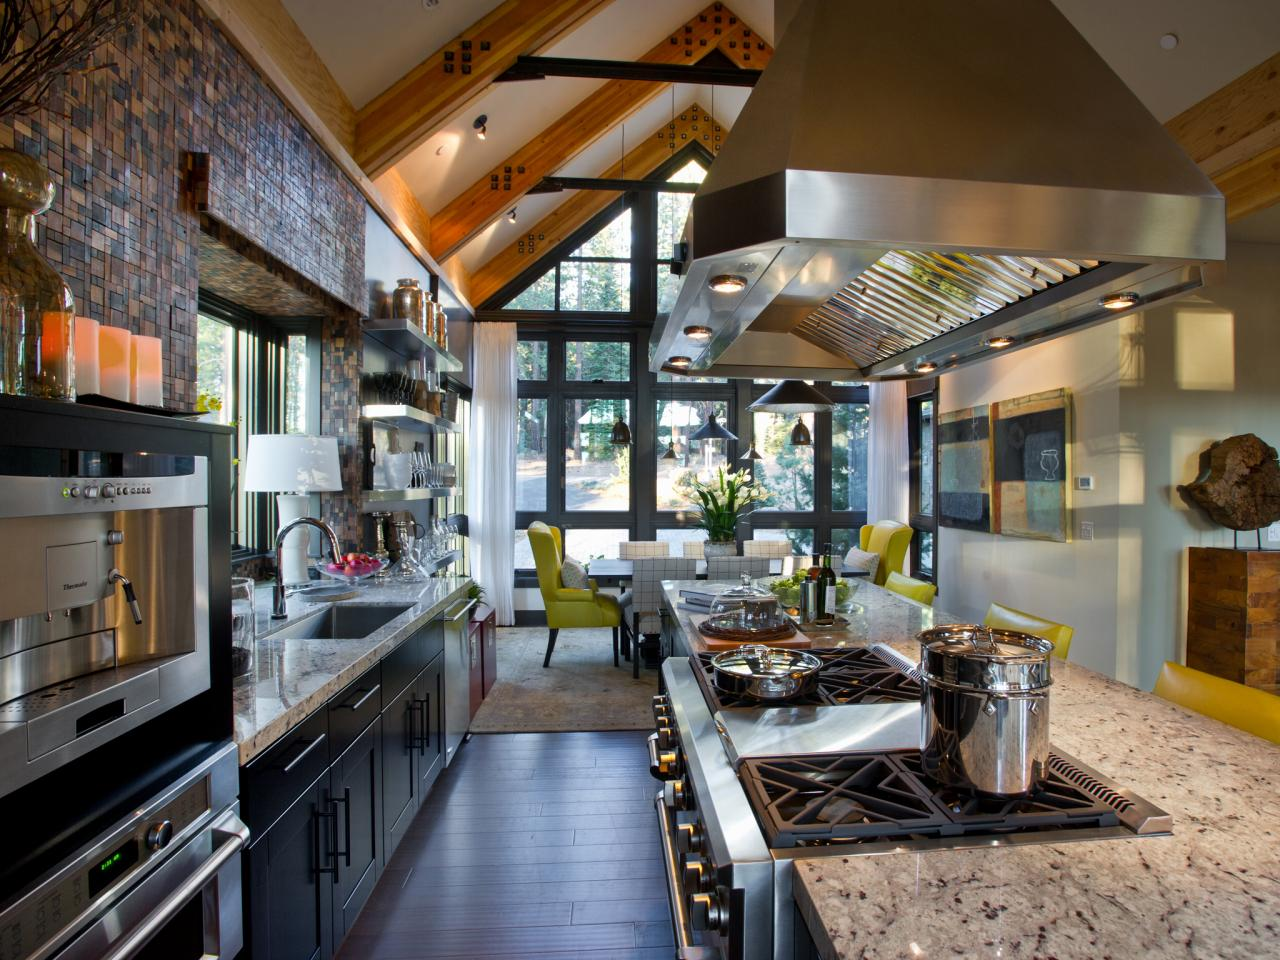 Galley kitchen with vaulted ceiling and stainless range Dining room designs 2014